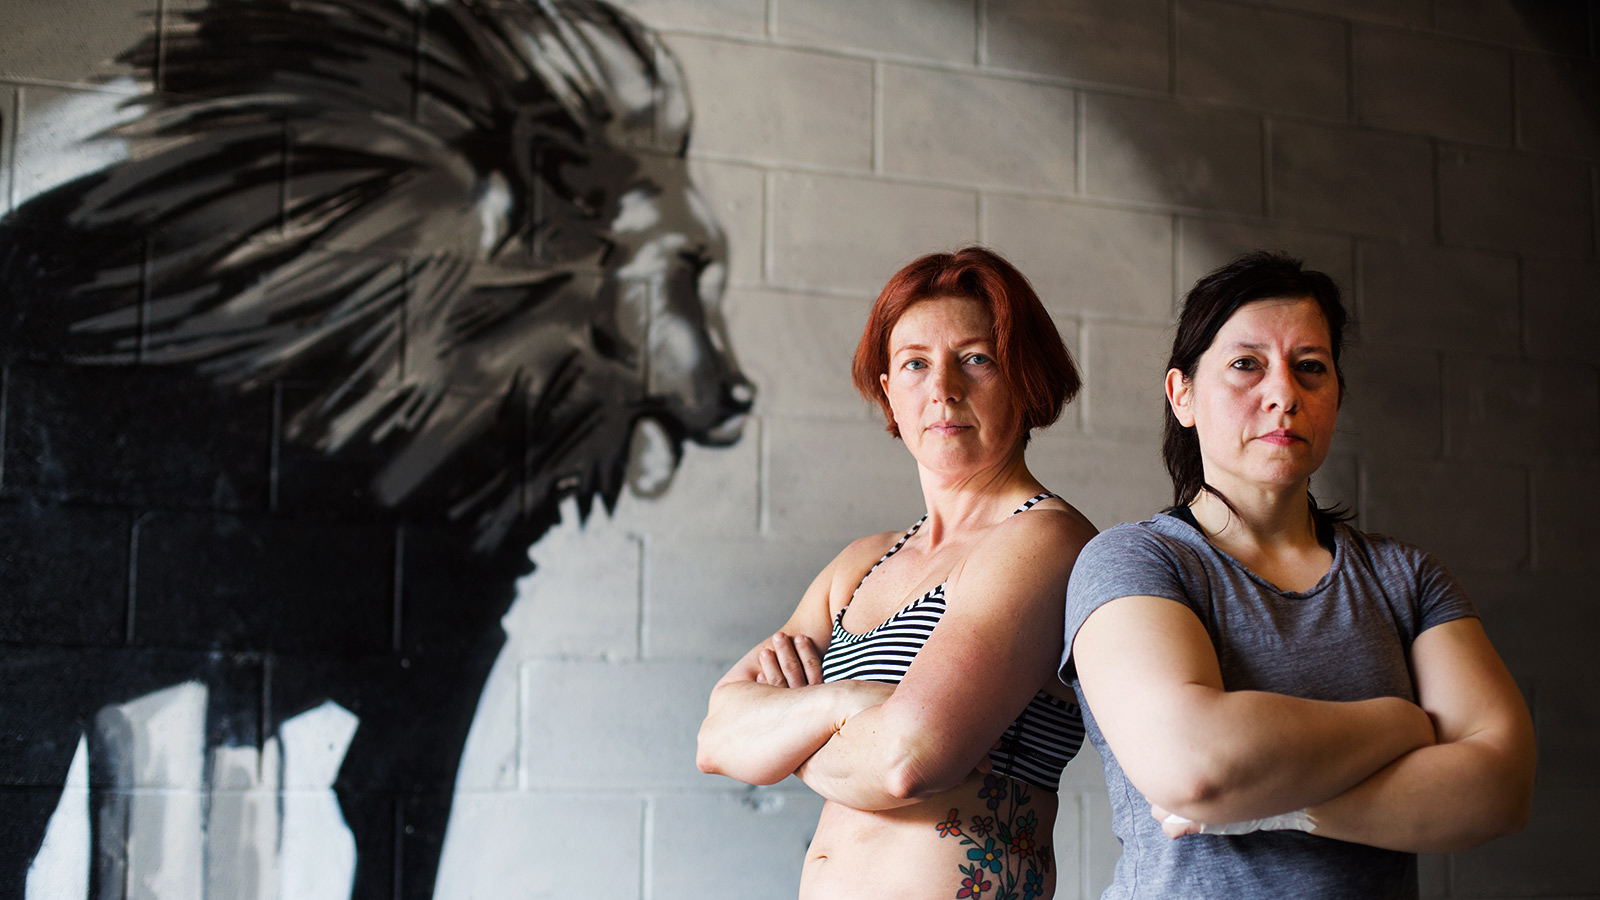 Korina Besednik (left) and Nurit Basin train together on weights at the Academy of Lions in Toronto.